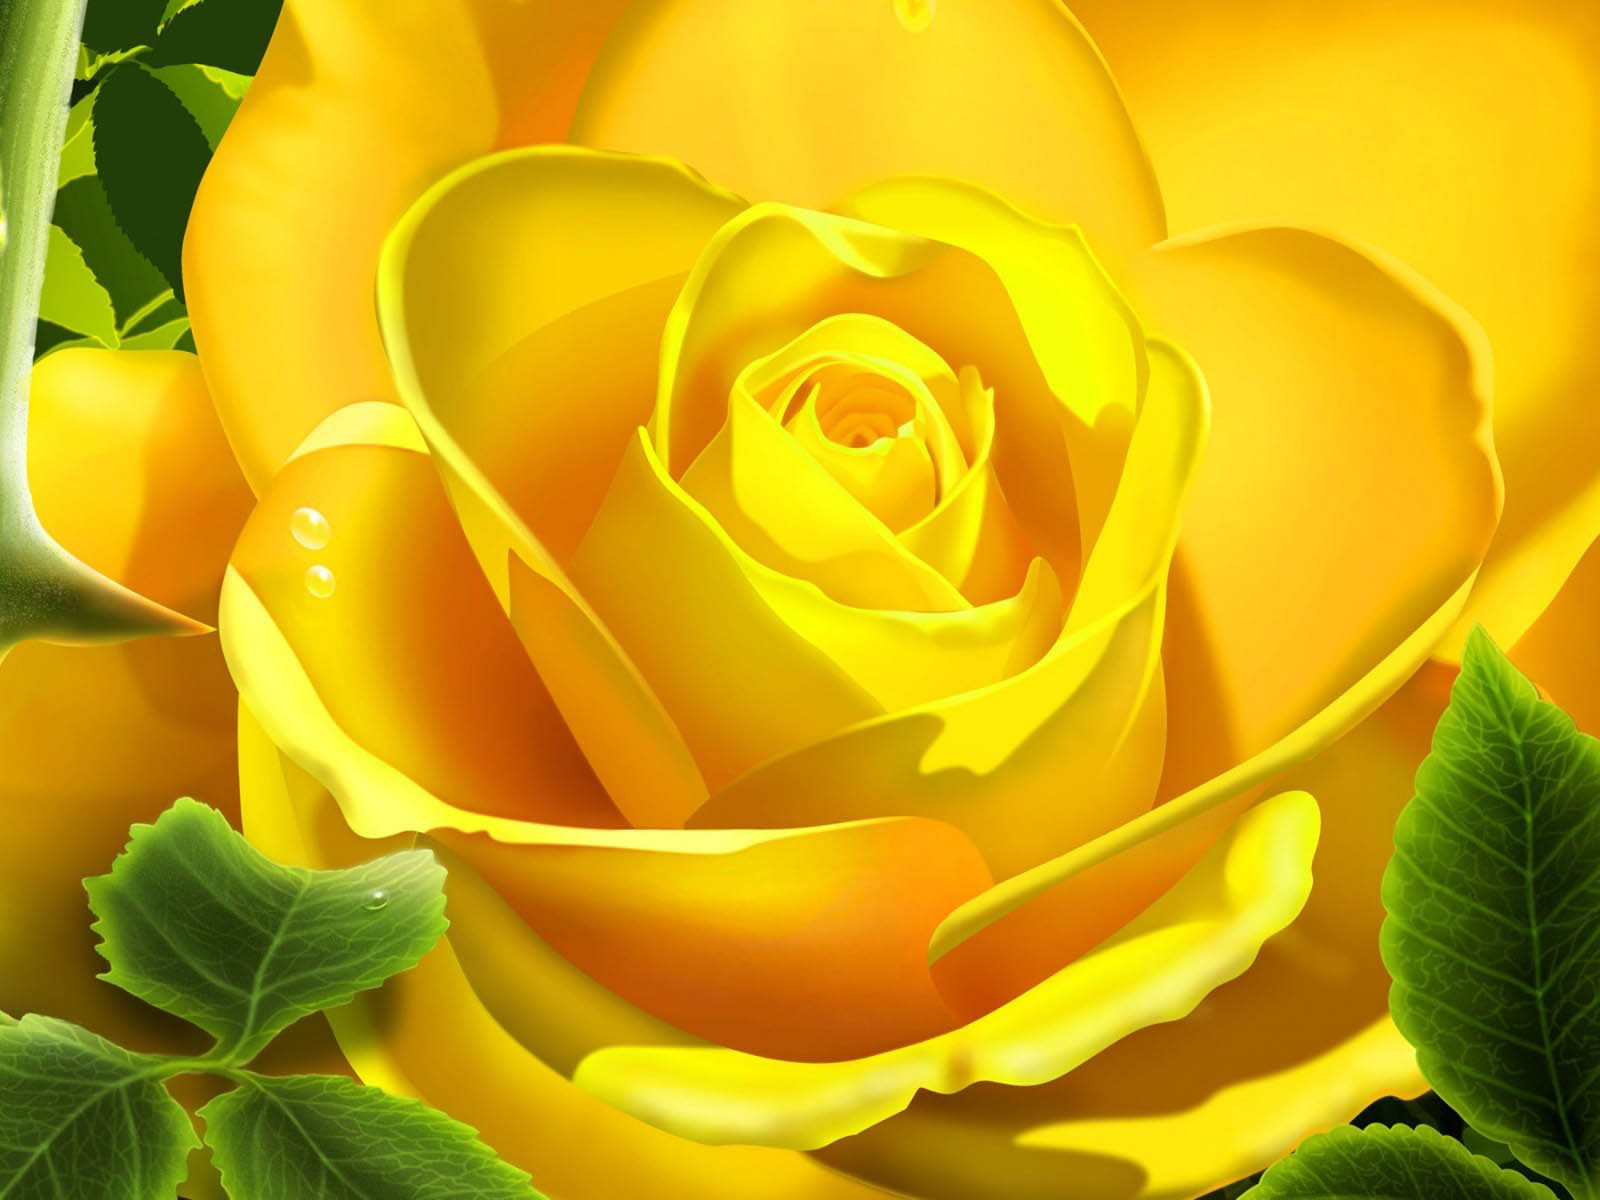 wallpapers: Rose Desktop Wallpapers and Backgrounds